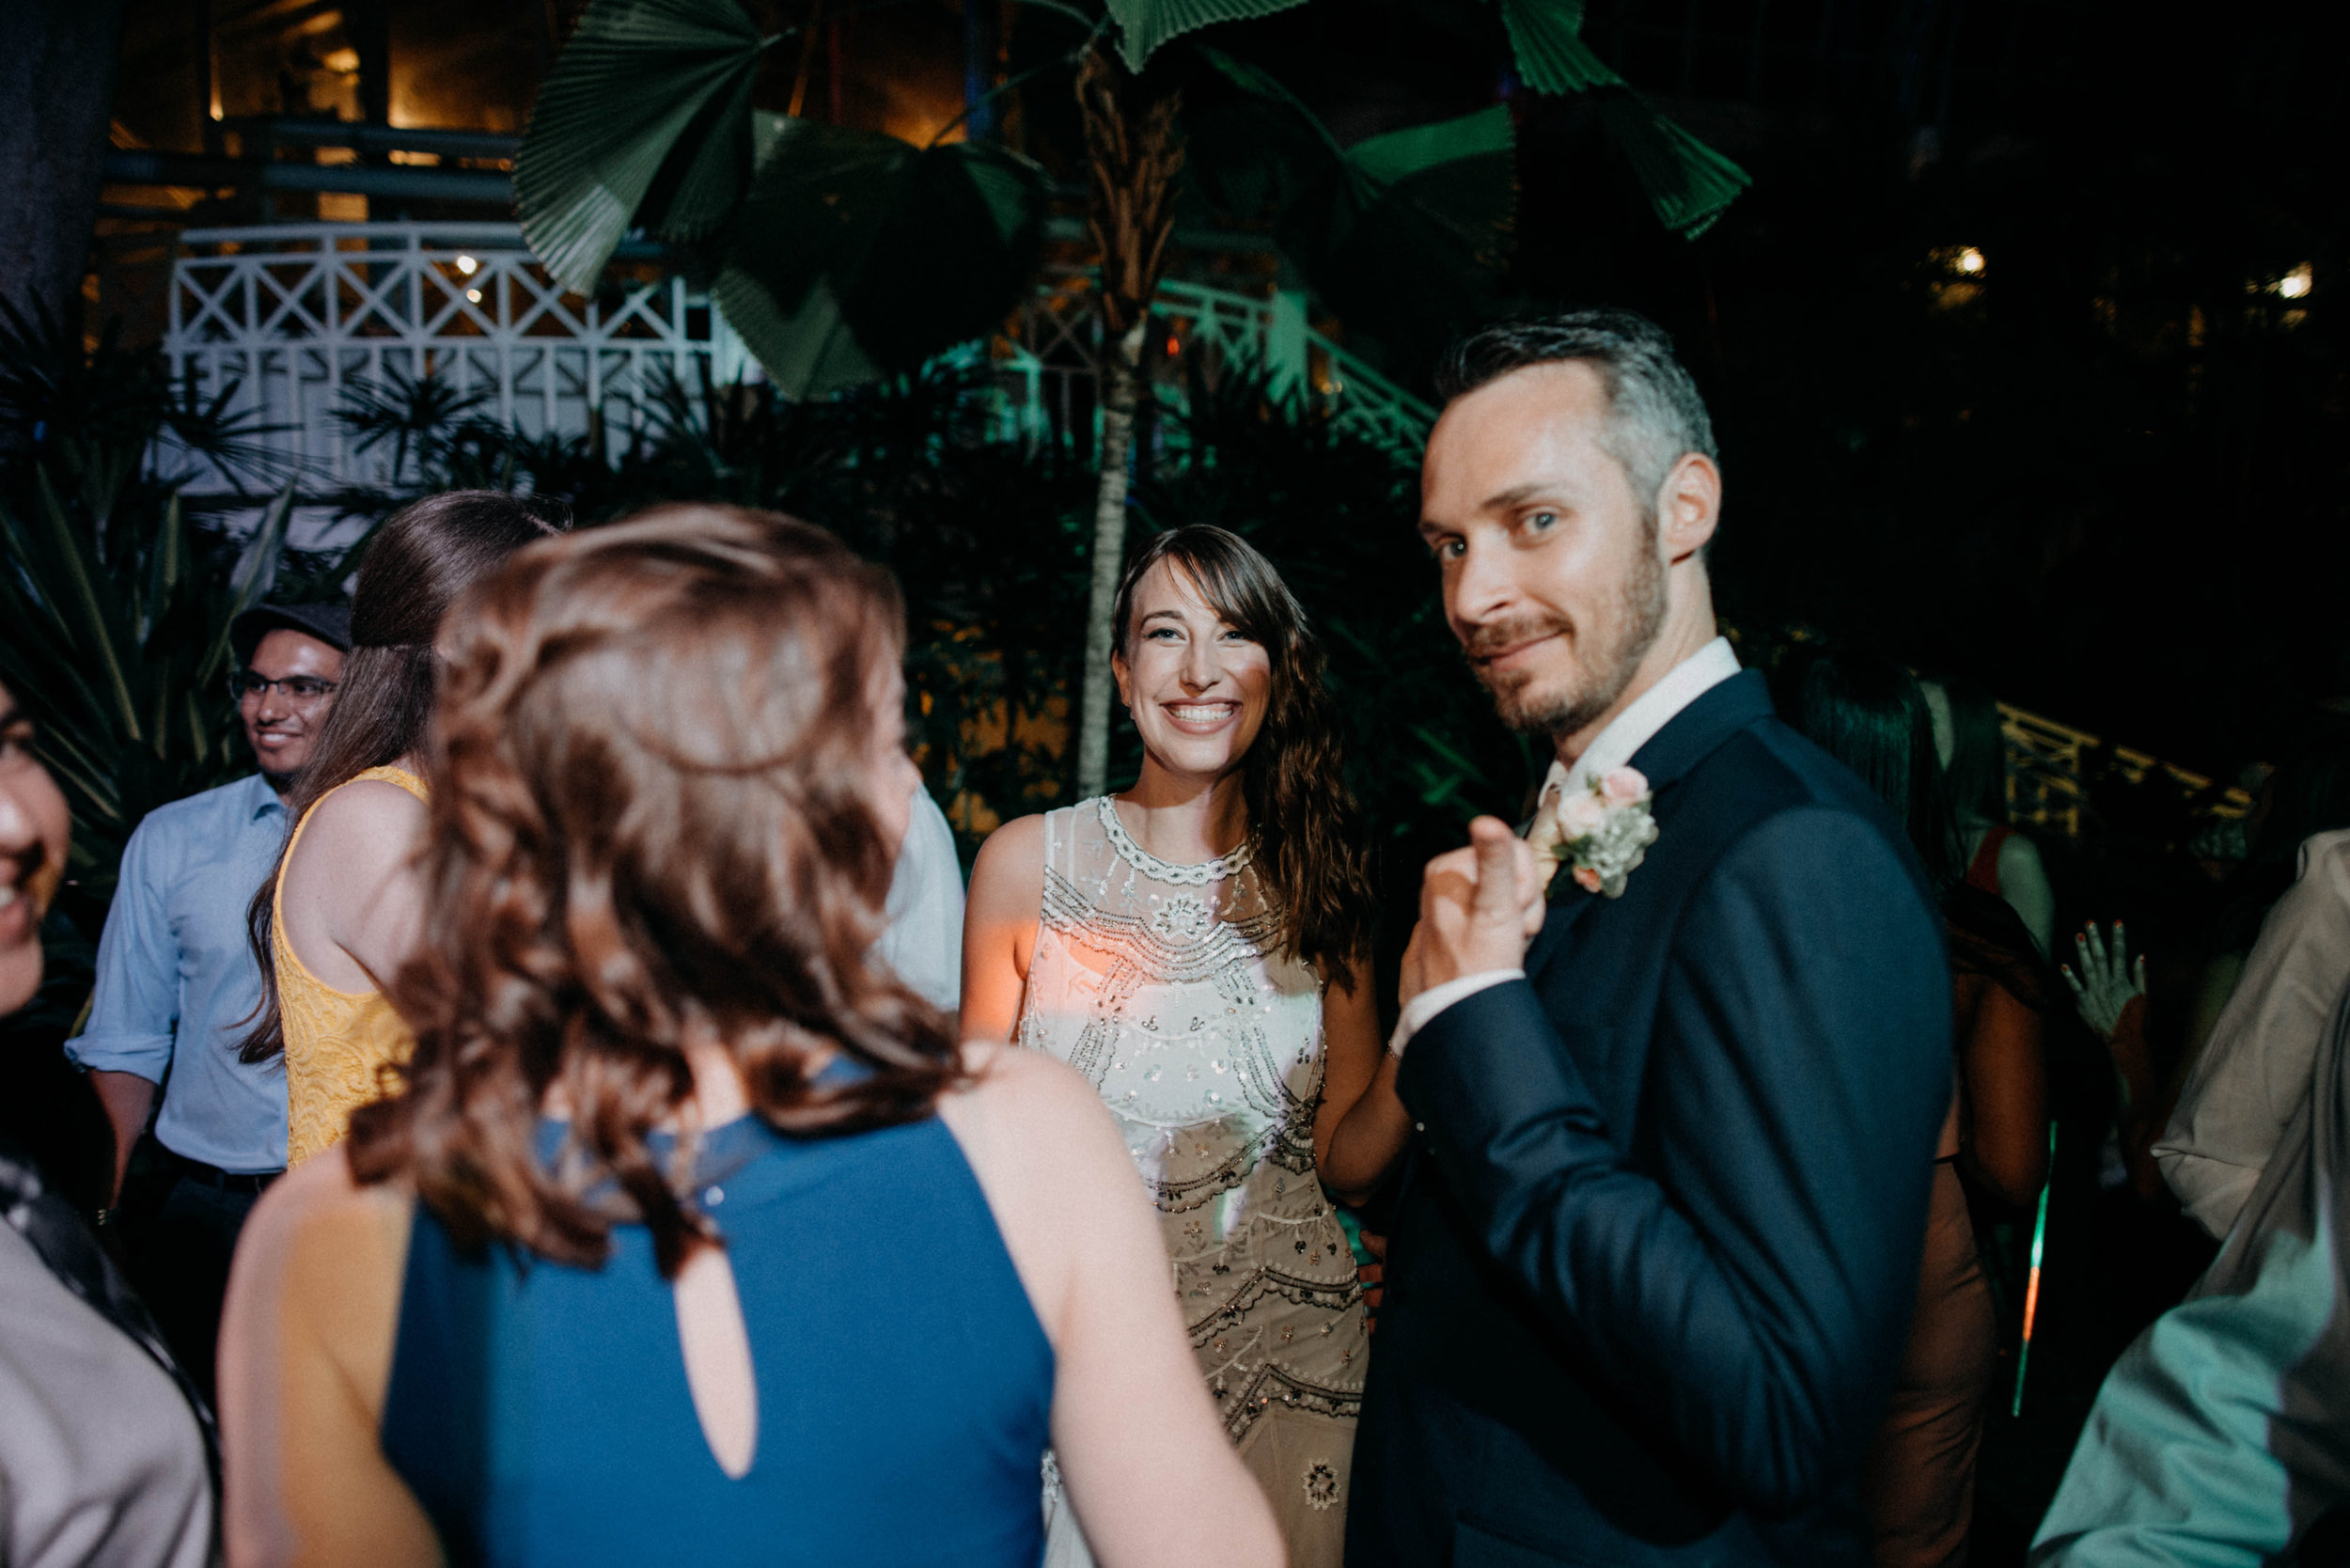 franklin park conservatory wedding columbus ohio wedding photographer grace e jones photography296.jpg